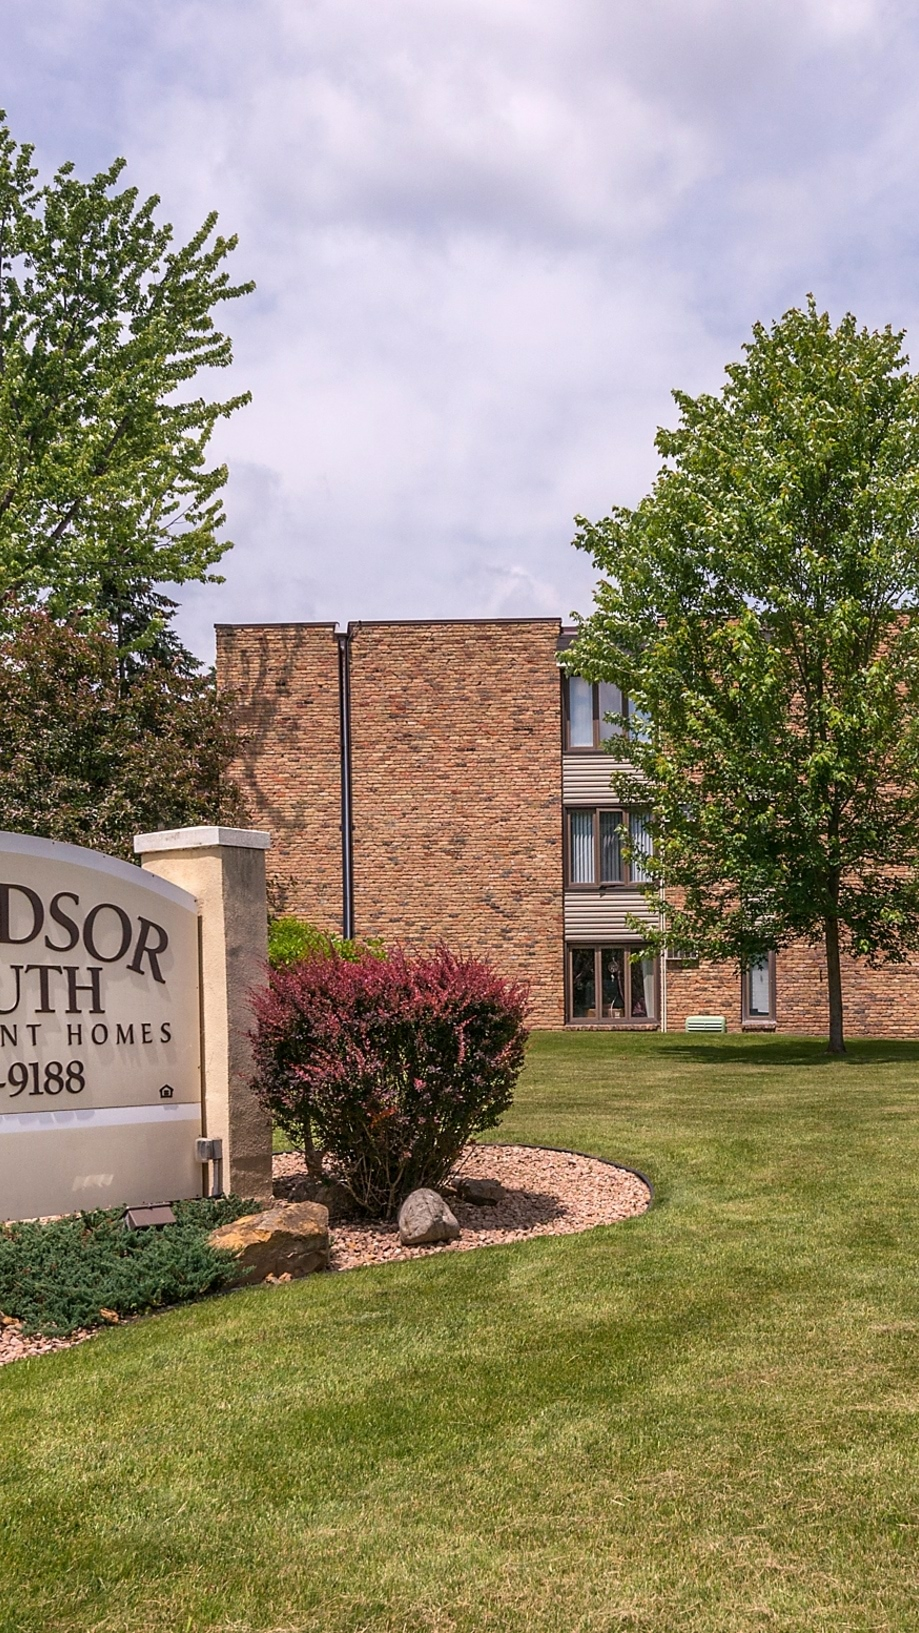 Windsor South Apartments in New Brighton, MN